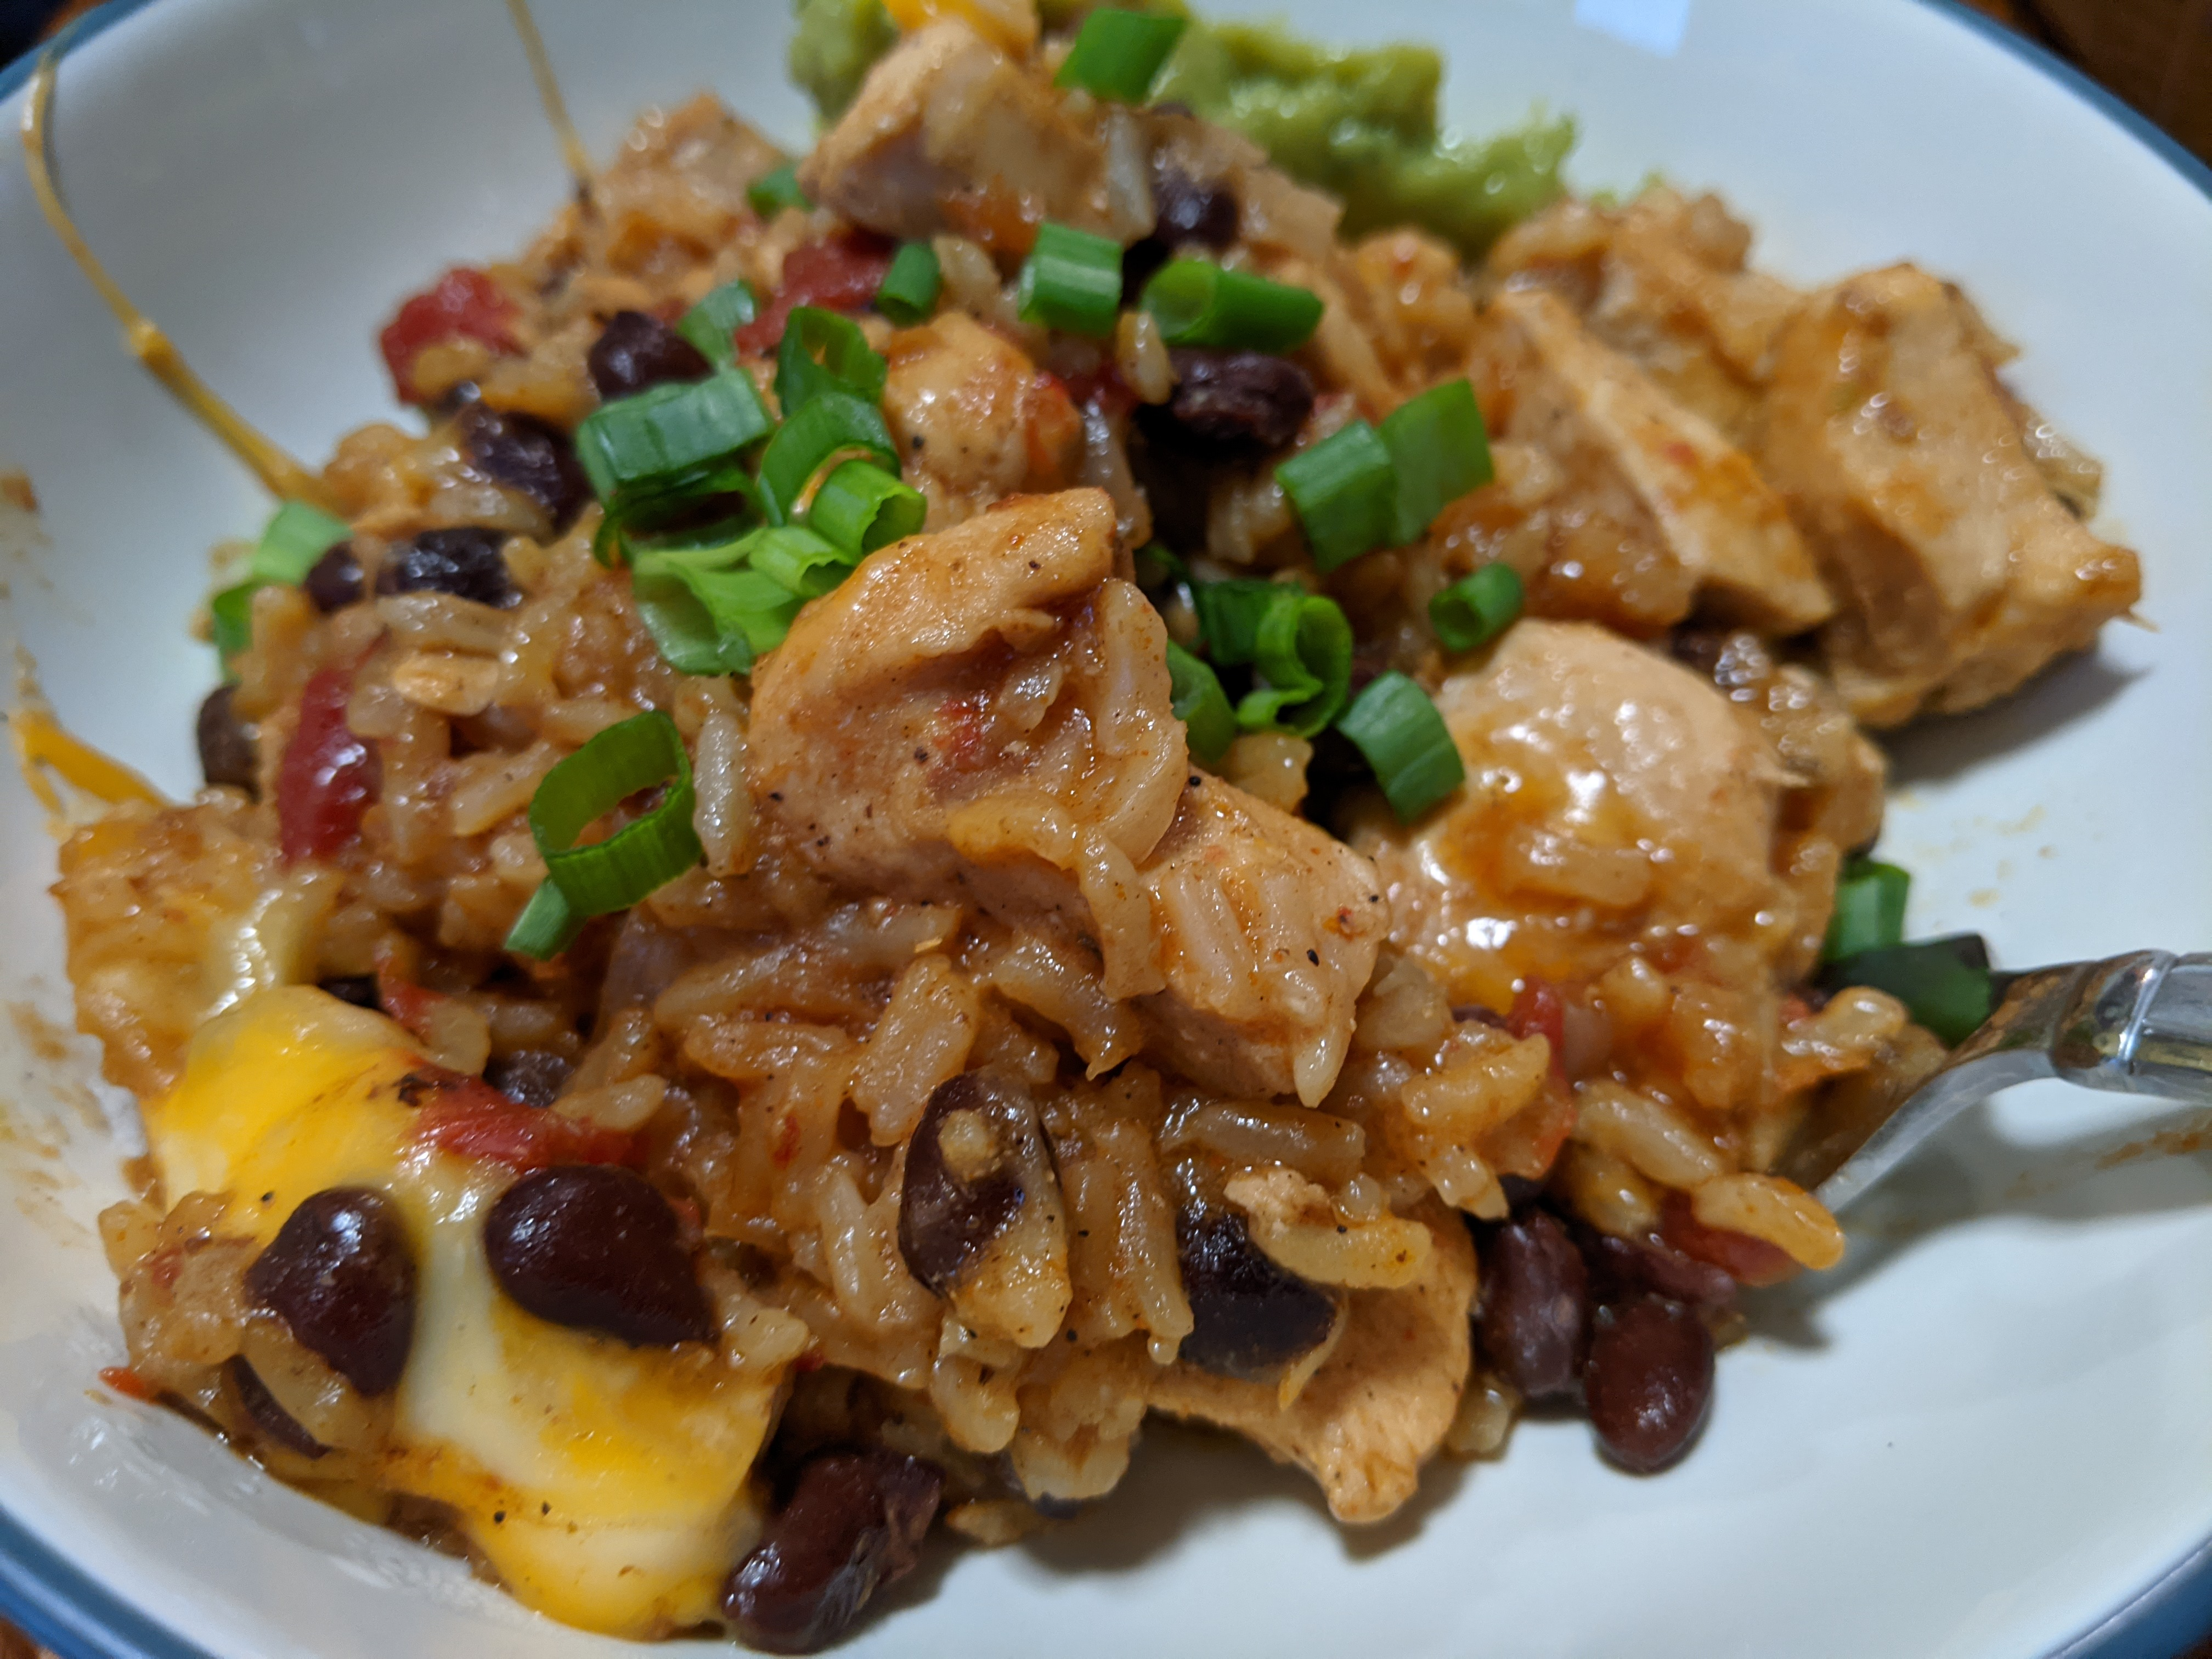 Image of Baked Southwest Chicken